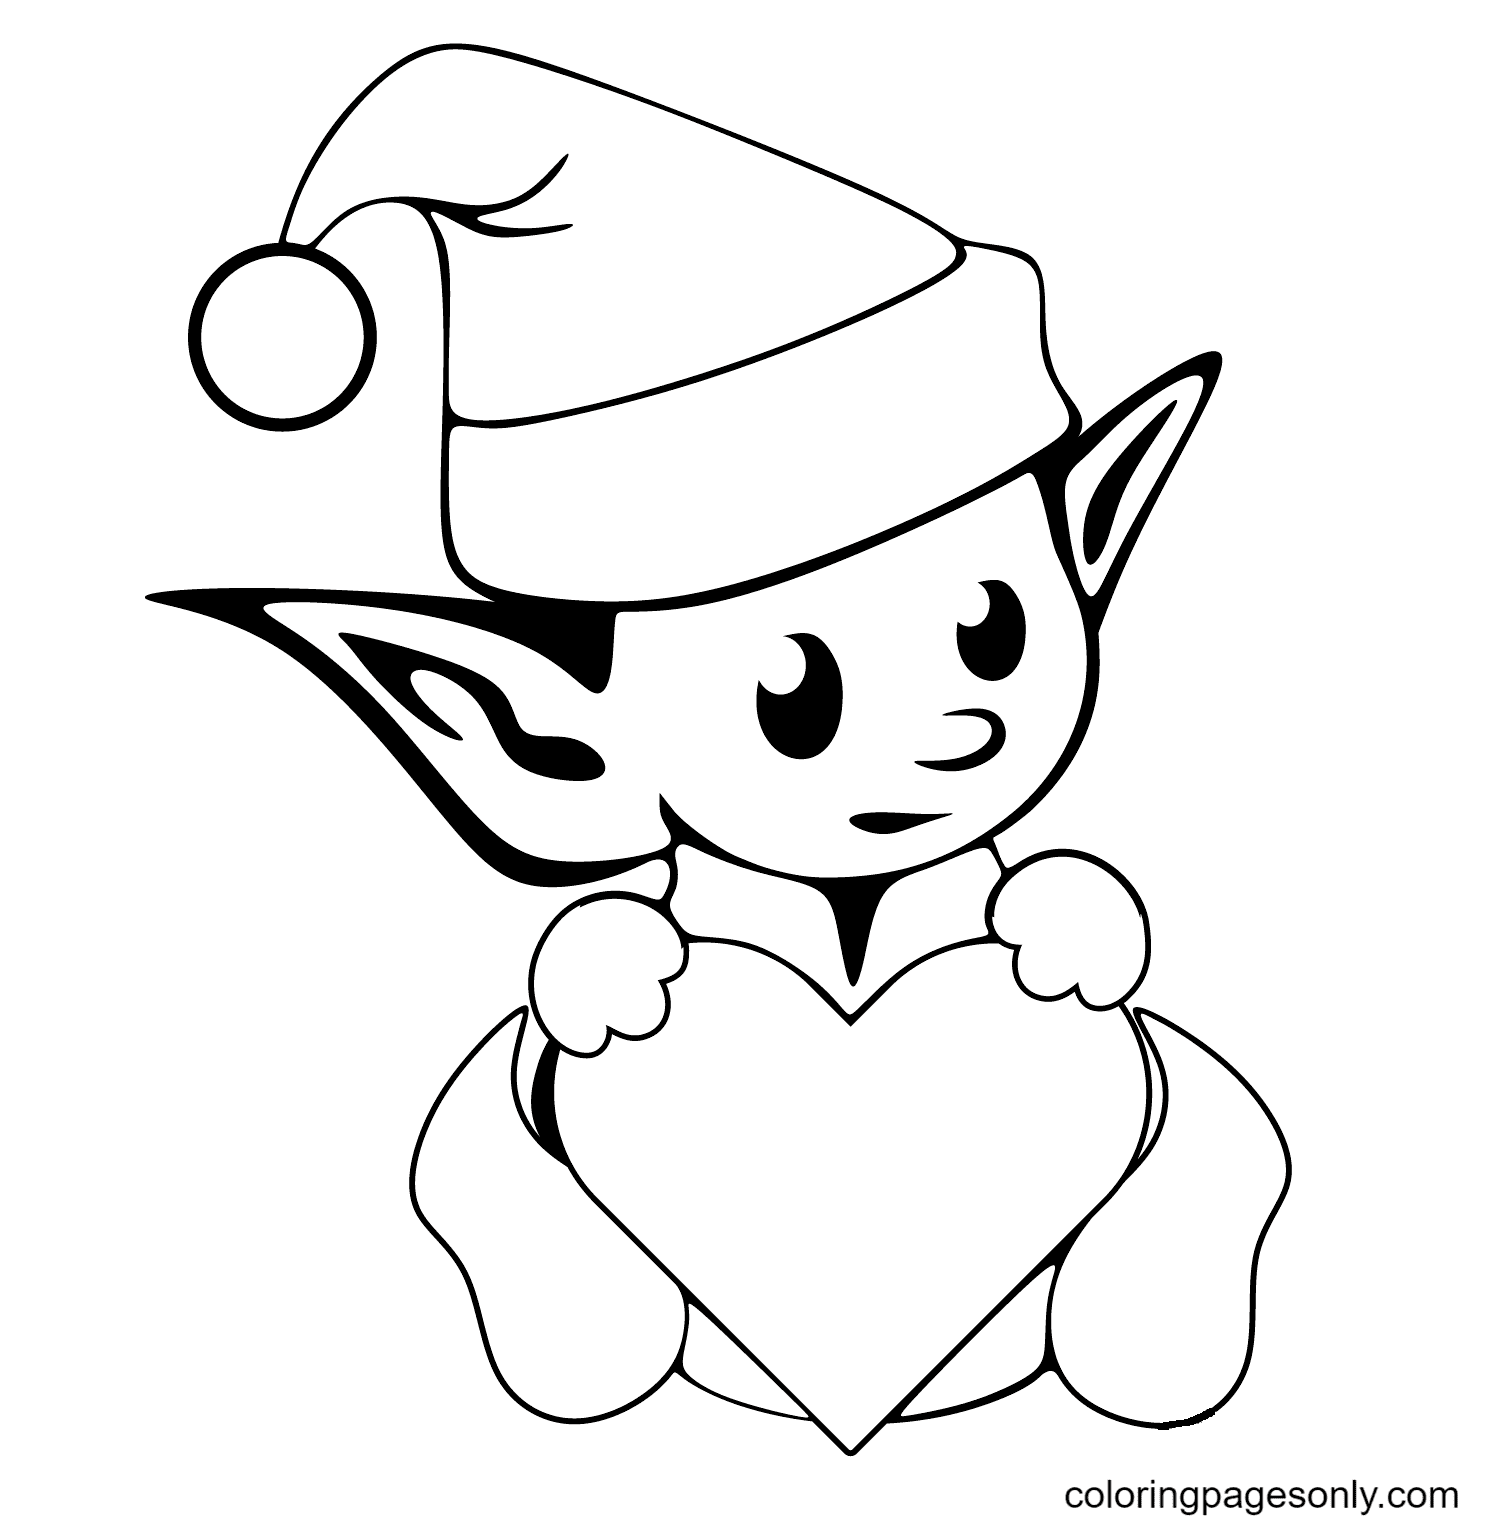 Cute Christmas Elf Coloring Page